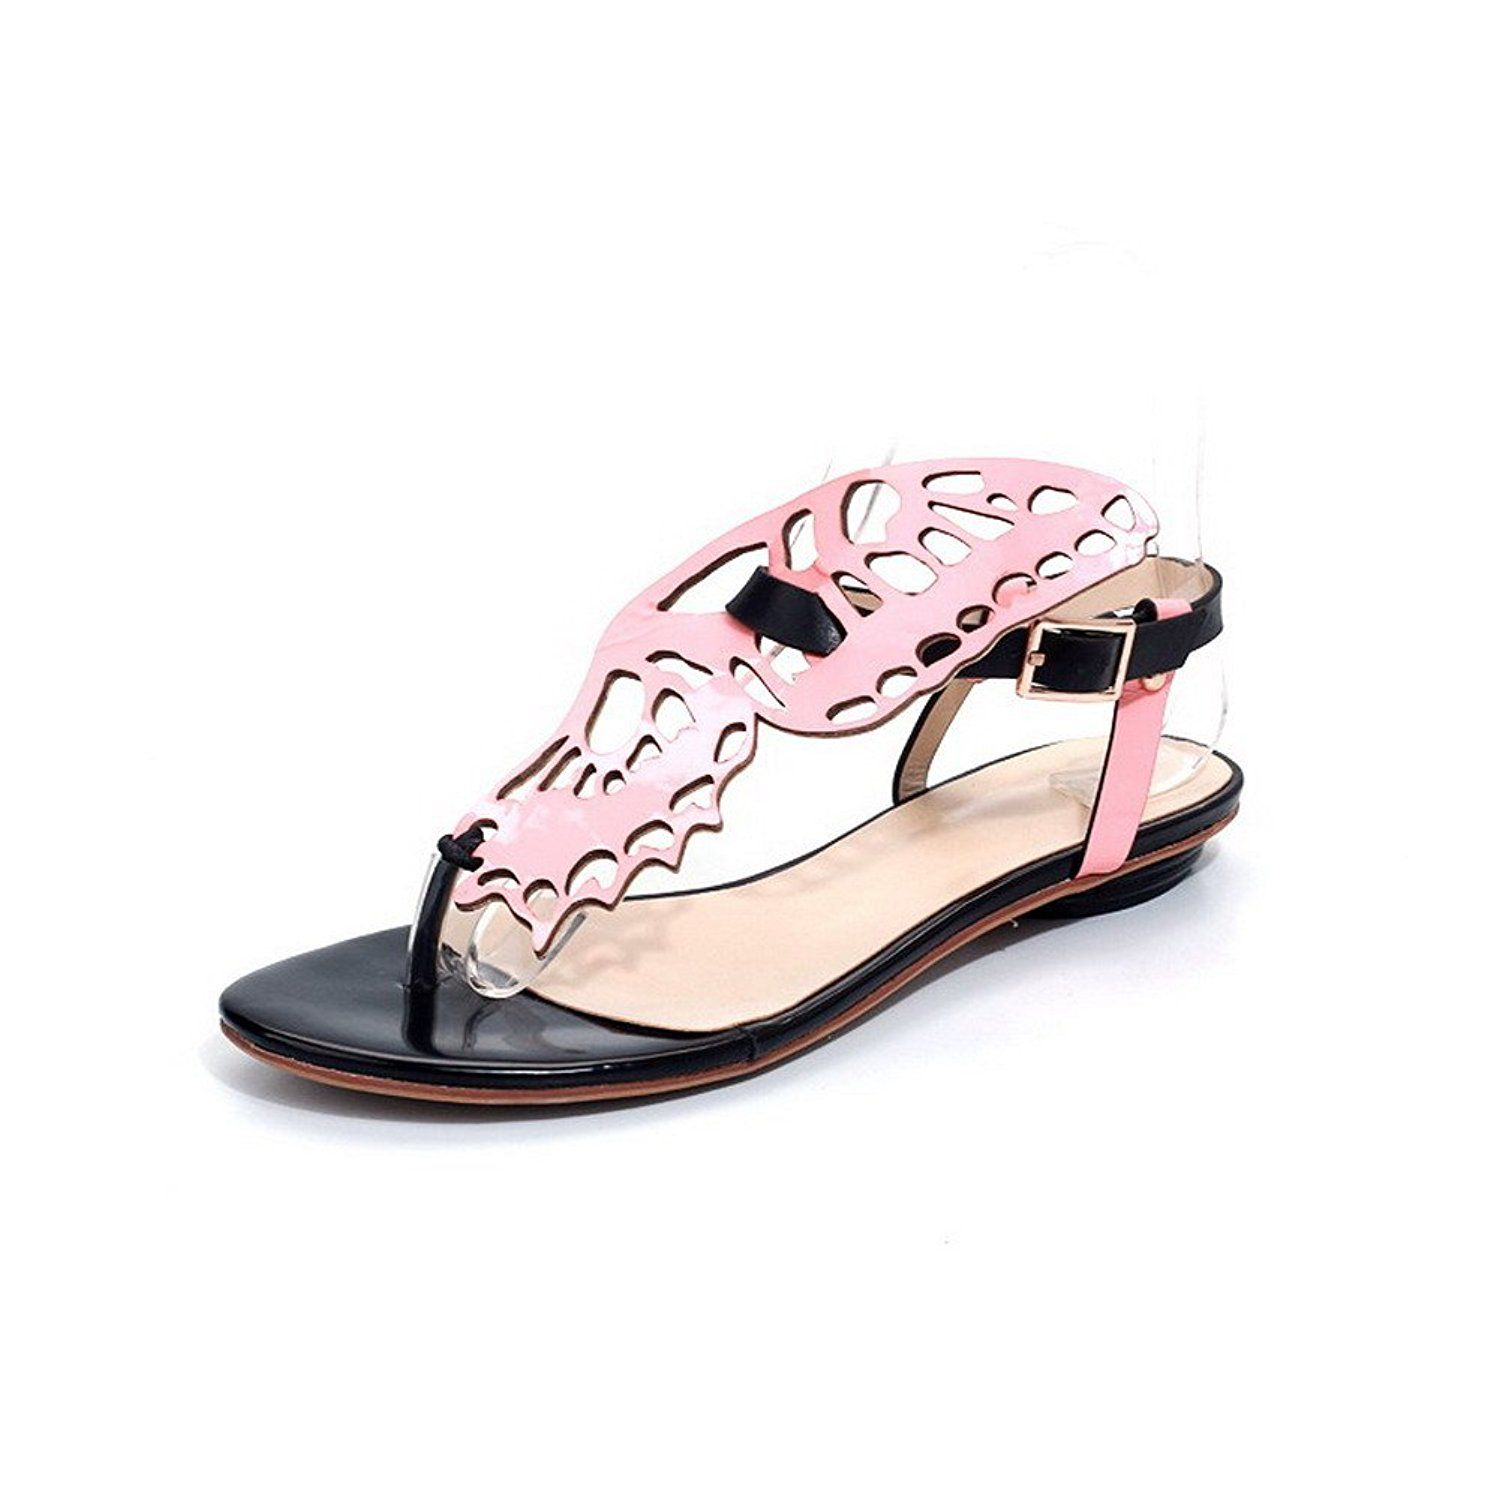 AmoonyFashion Women's Thong Toe Flats Cow Leather Patent Leather Assorted Colors Sandals >>> You can get more details by clicking on the image.